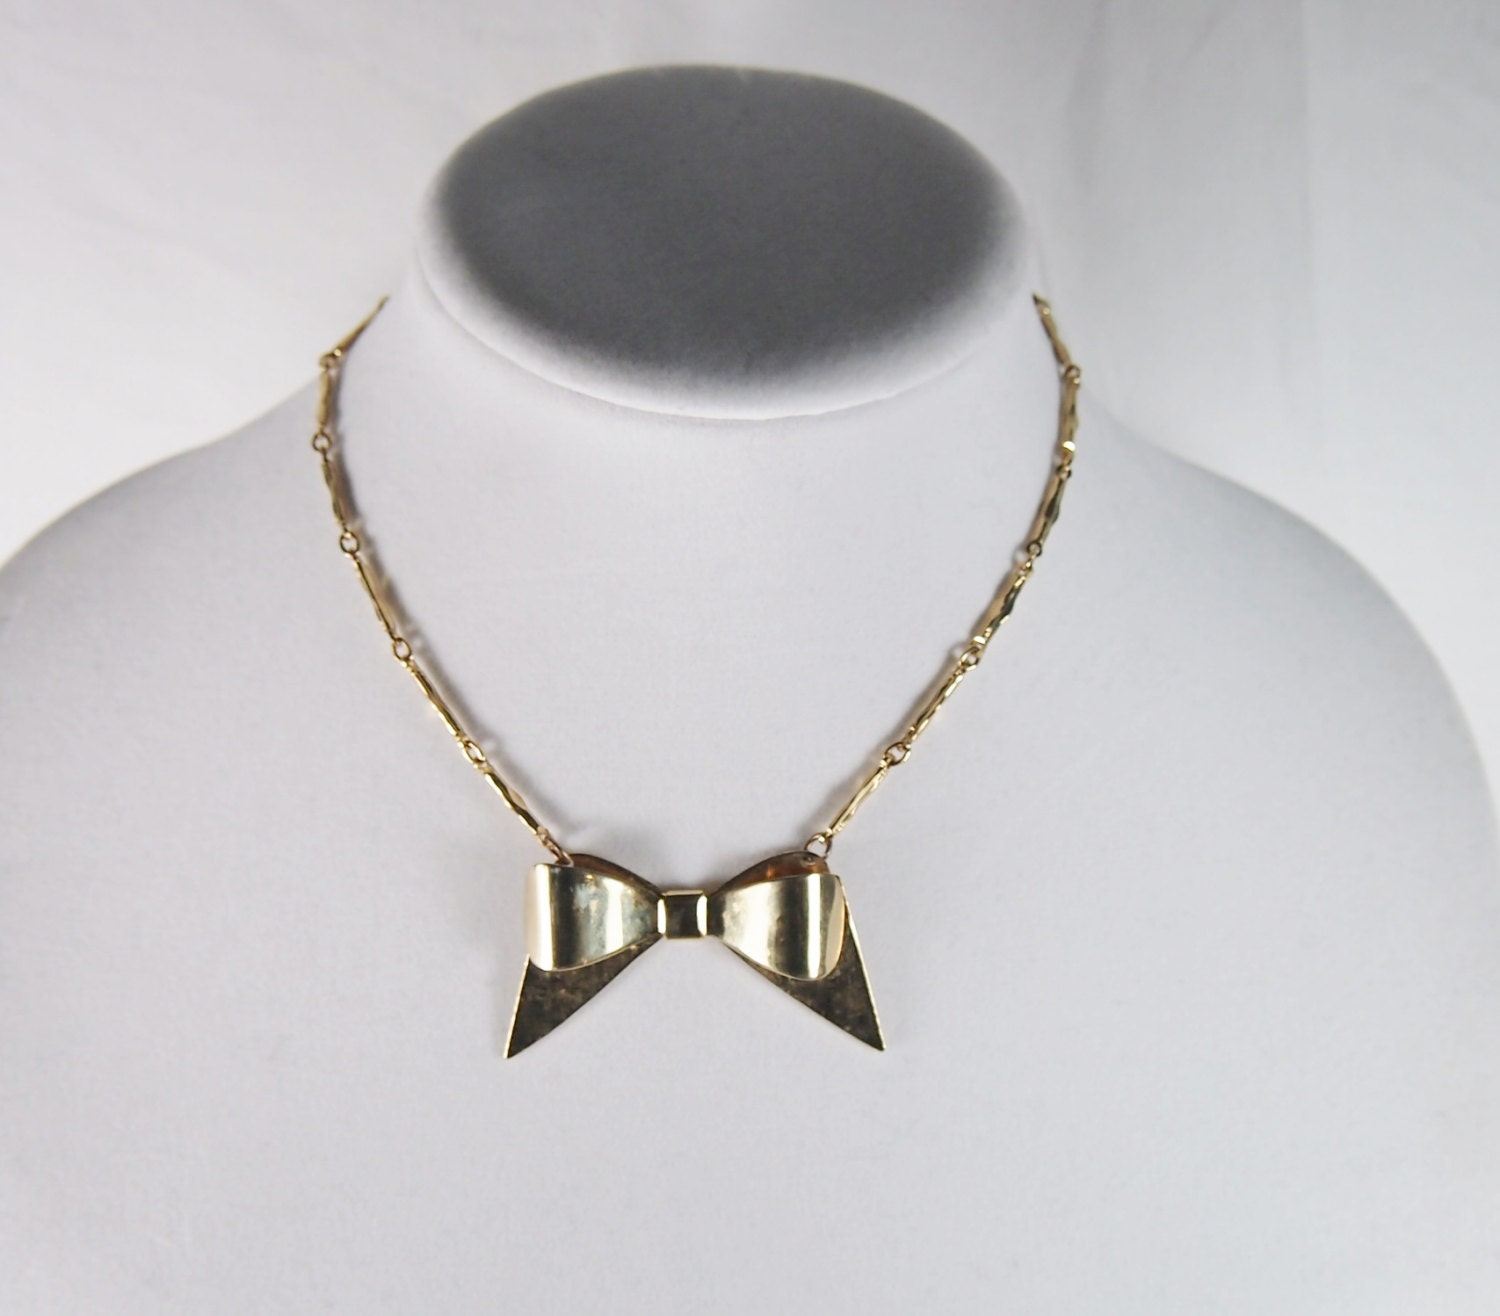 bow tie gold tone choker necklace 60s vintage by jenniesjunque